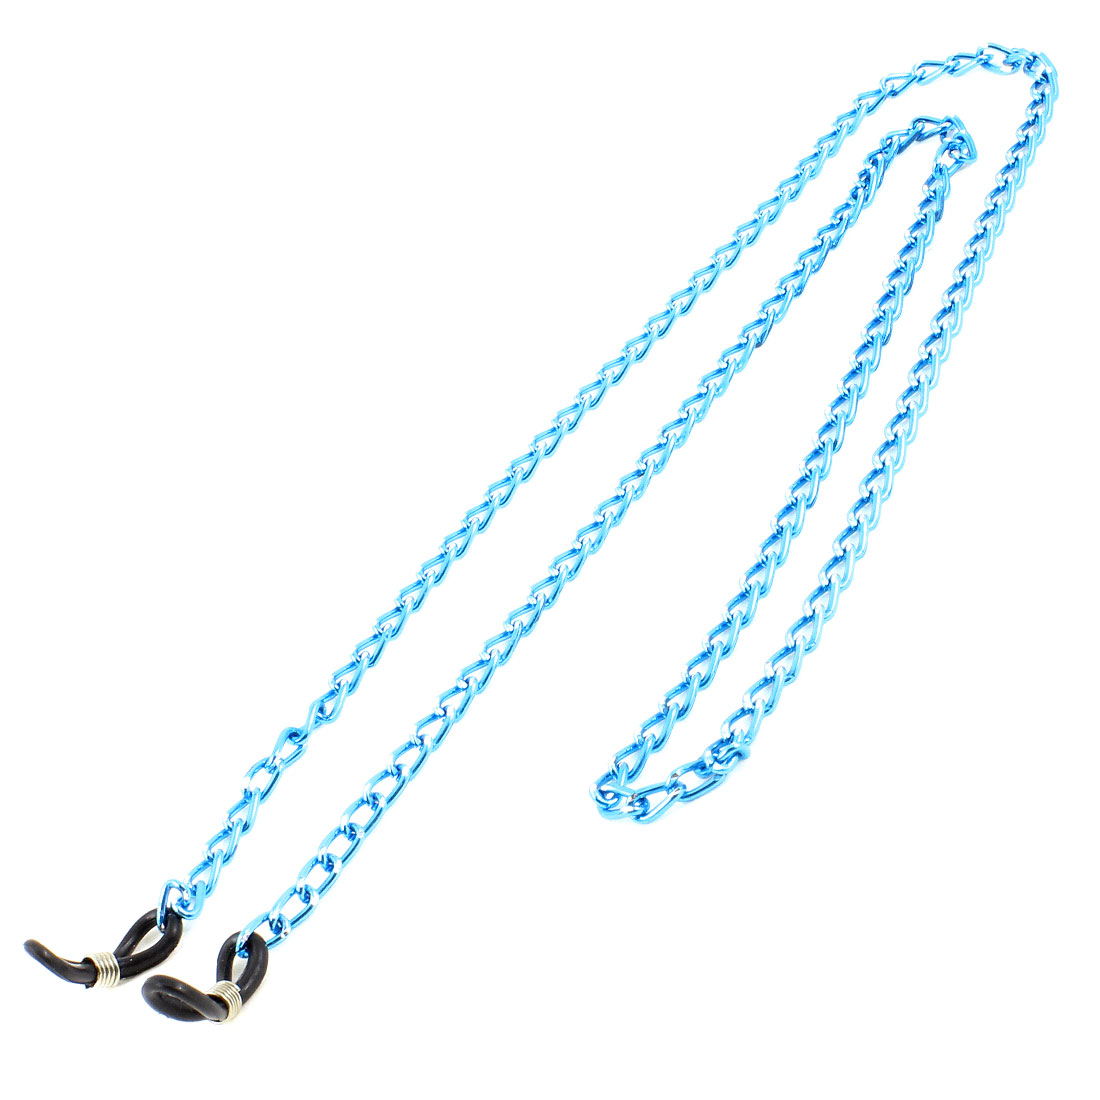 61CM Length Blue Metal Unisex Mini Cylinder Link Chain Eyeglasses Retainer